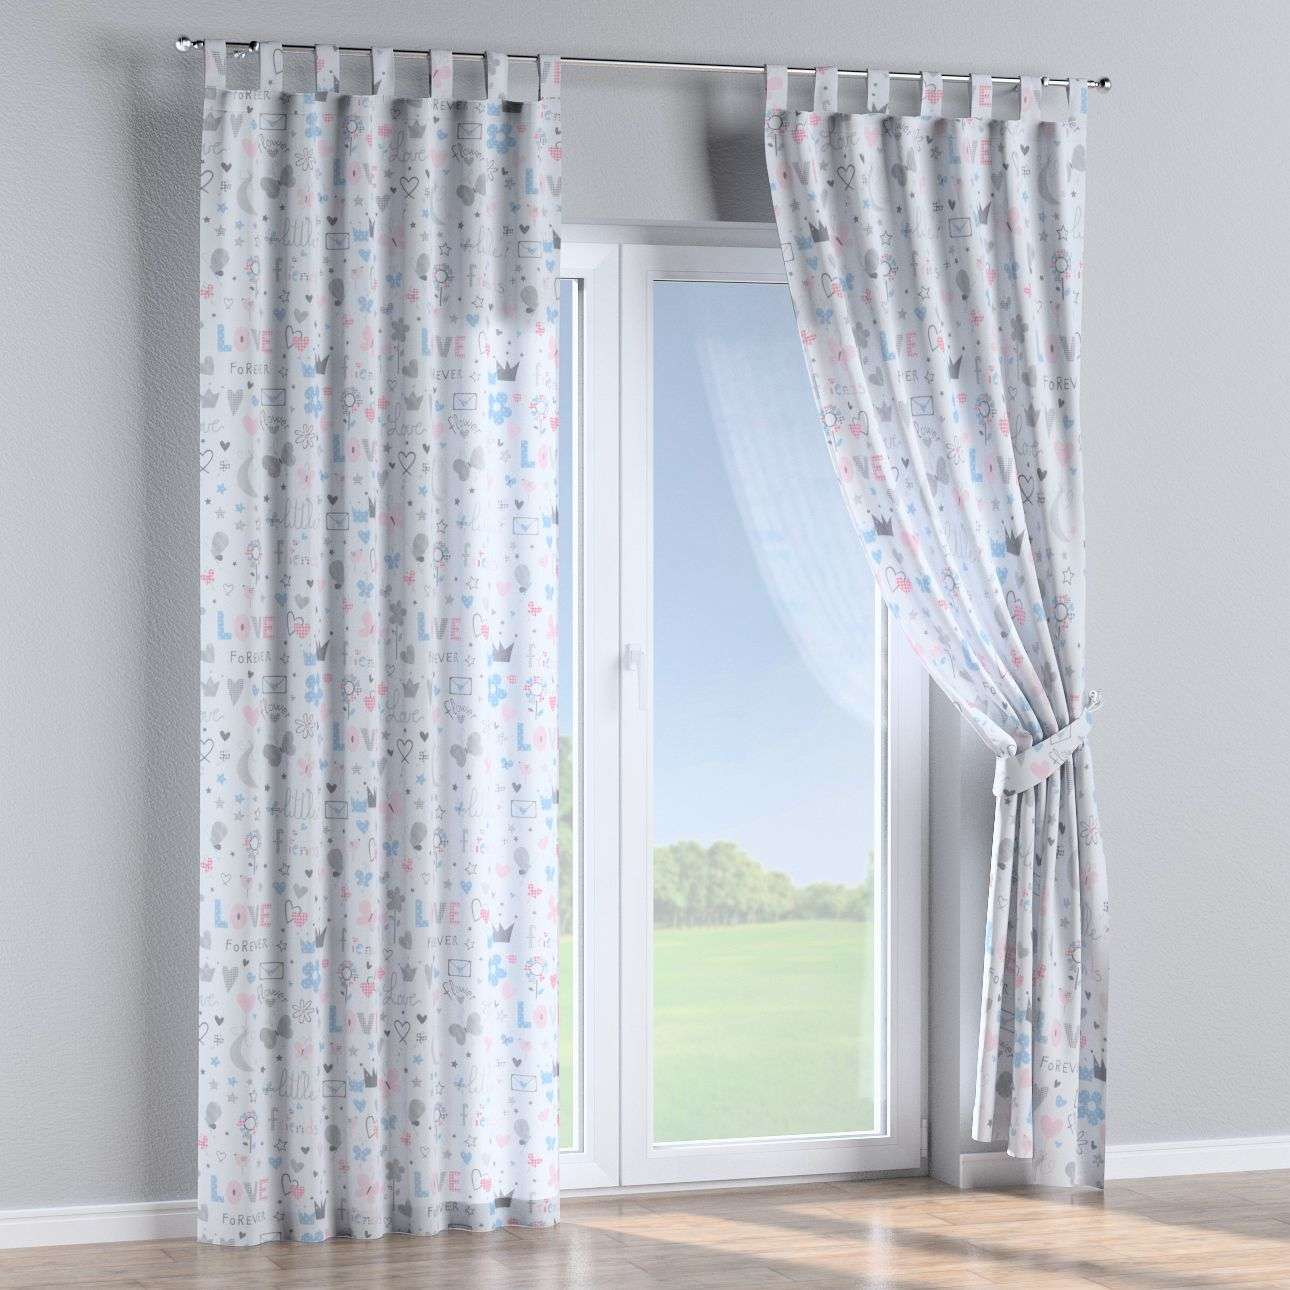 Tab top curtains 130 × 260 cm (51 × 102 inch) in collection Little World, fabric: 141-27